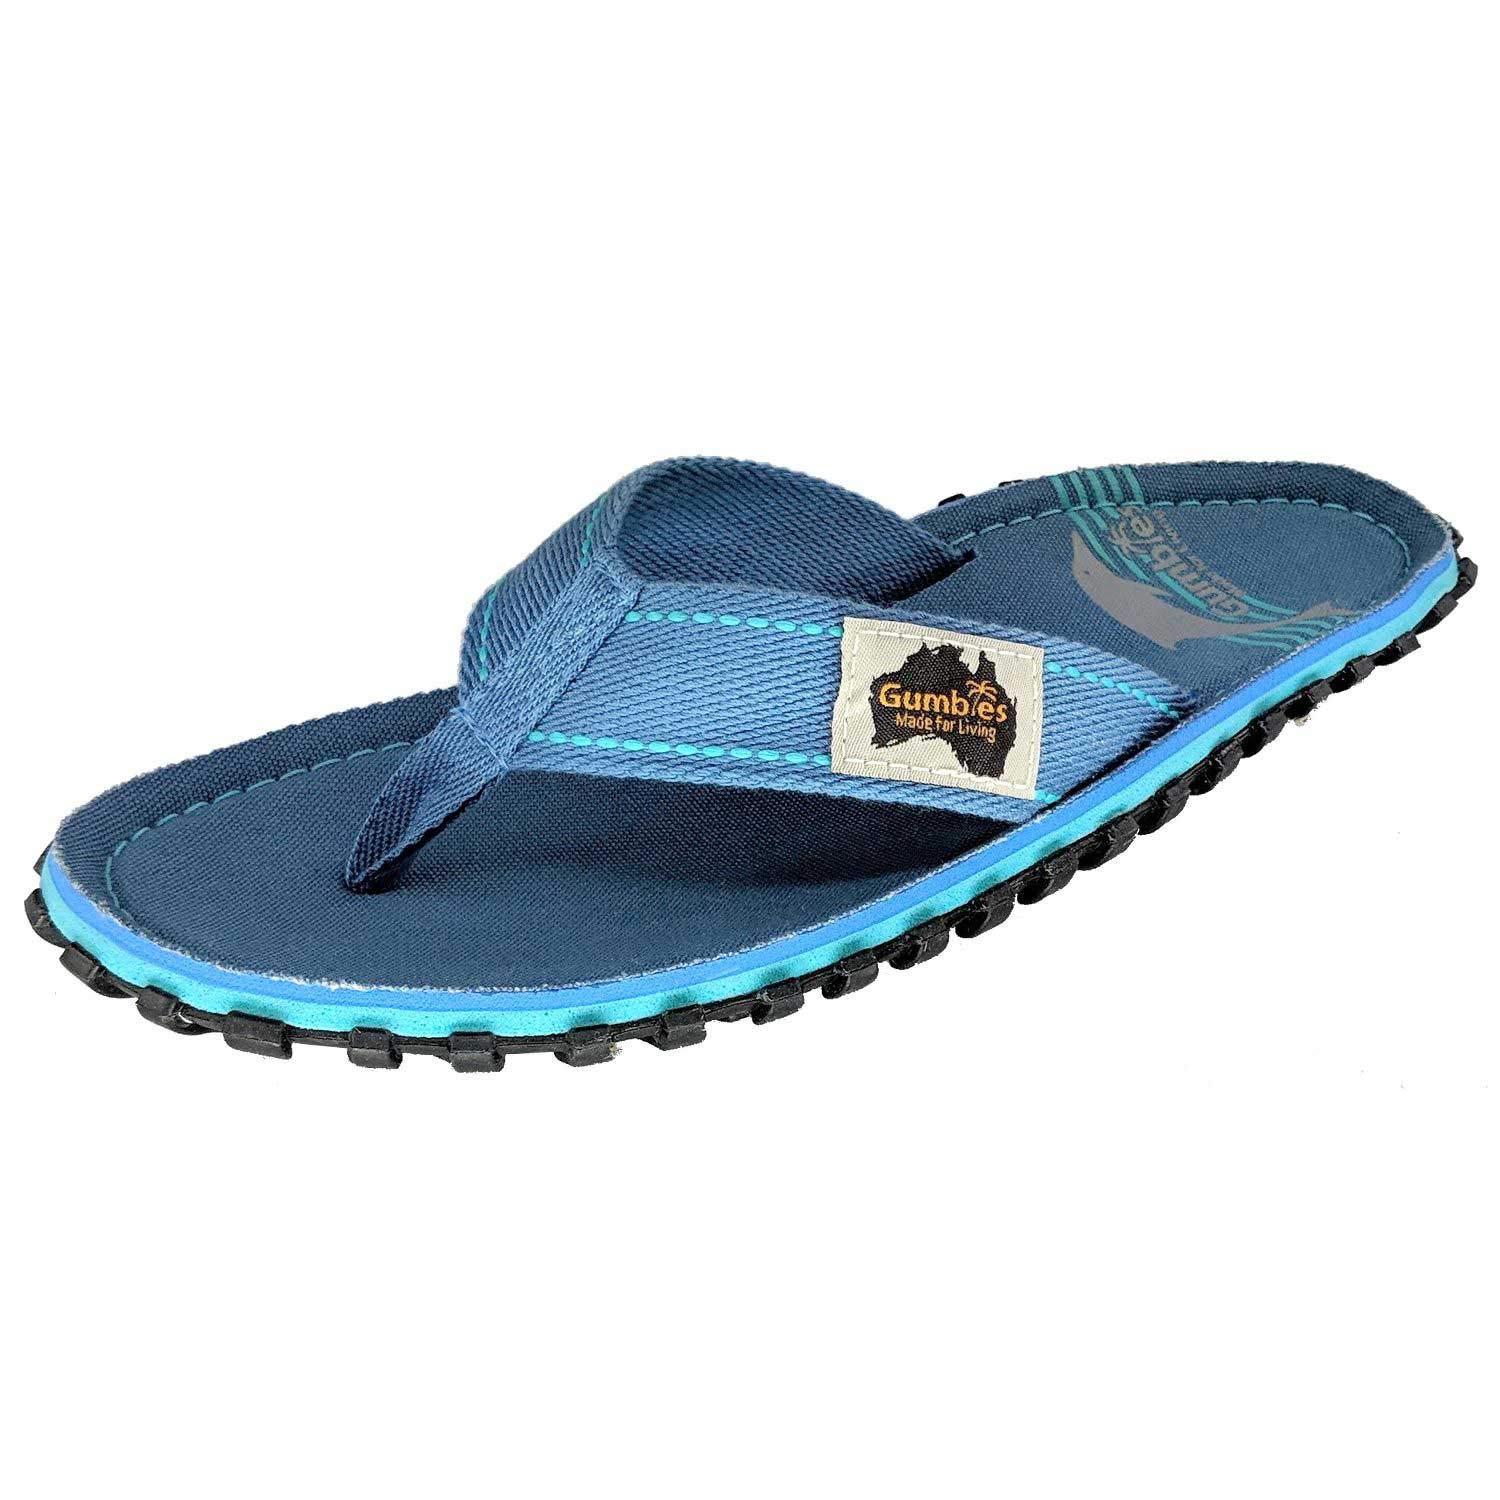 Grass Gumbies Isleer Stampato Donna Spiaggia Flip Infradito Nuovo